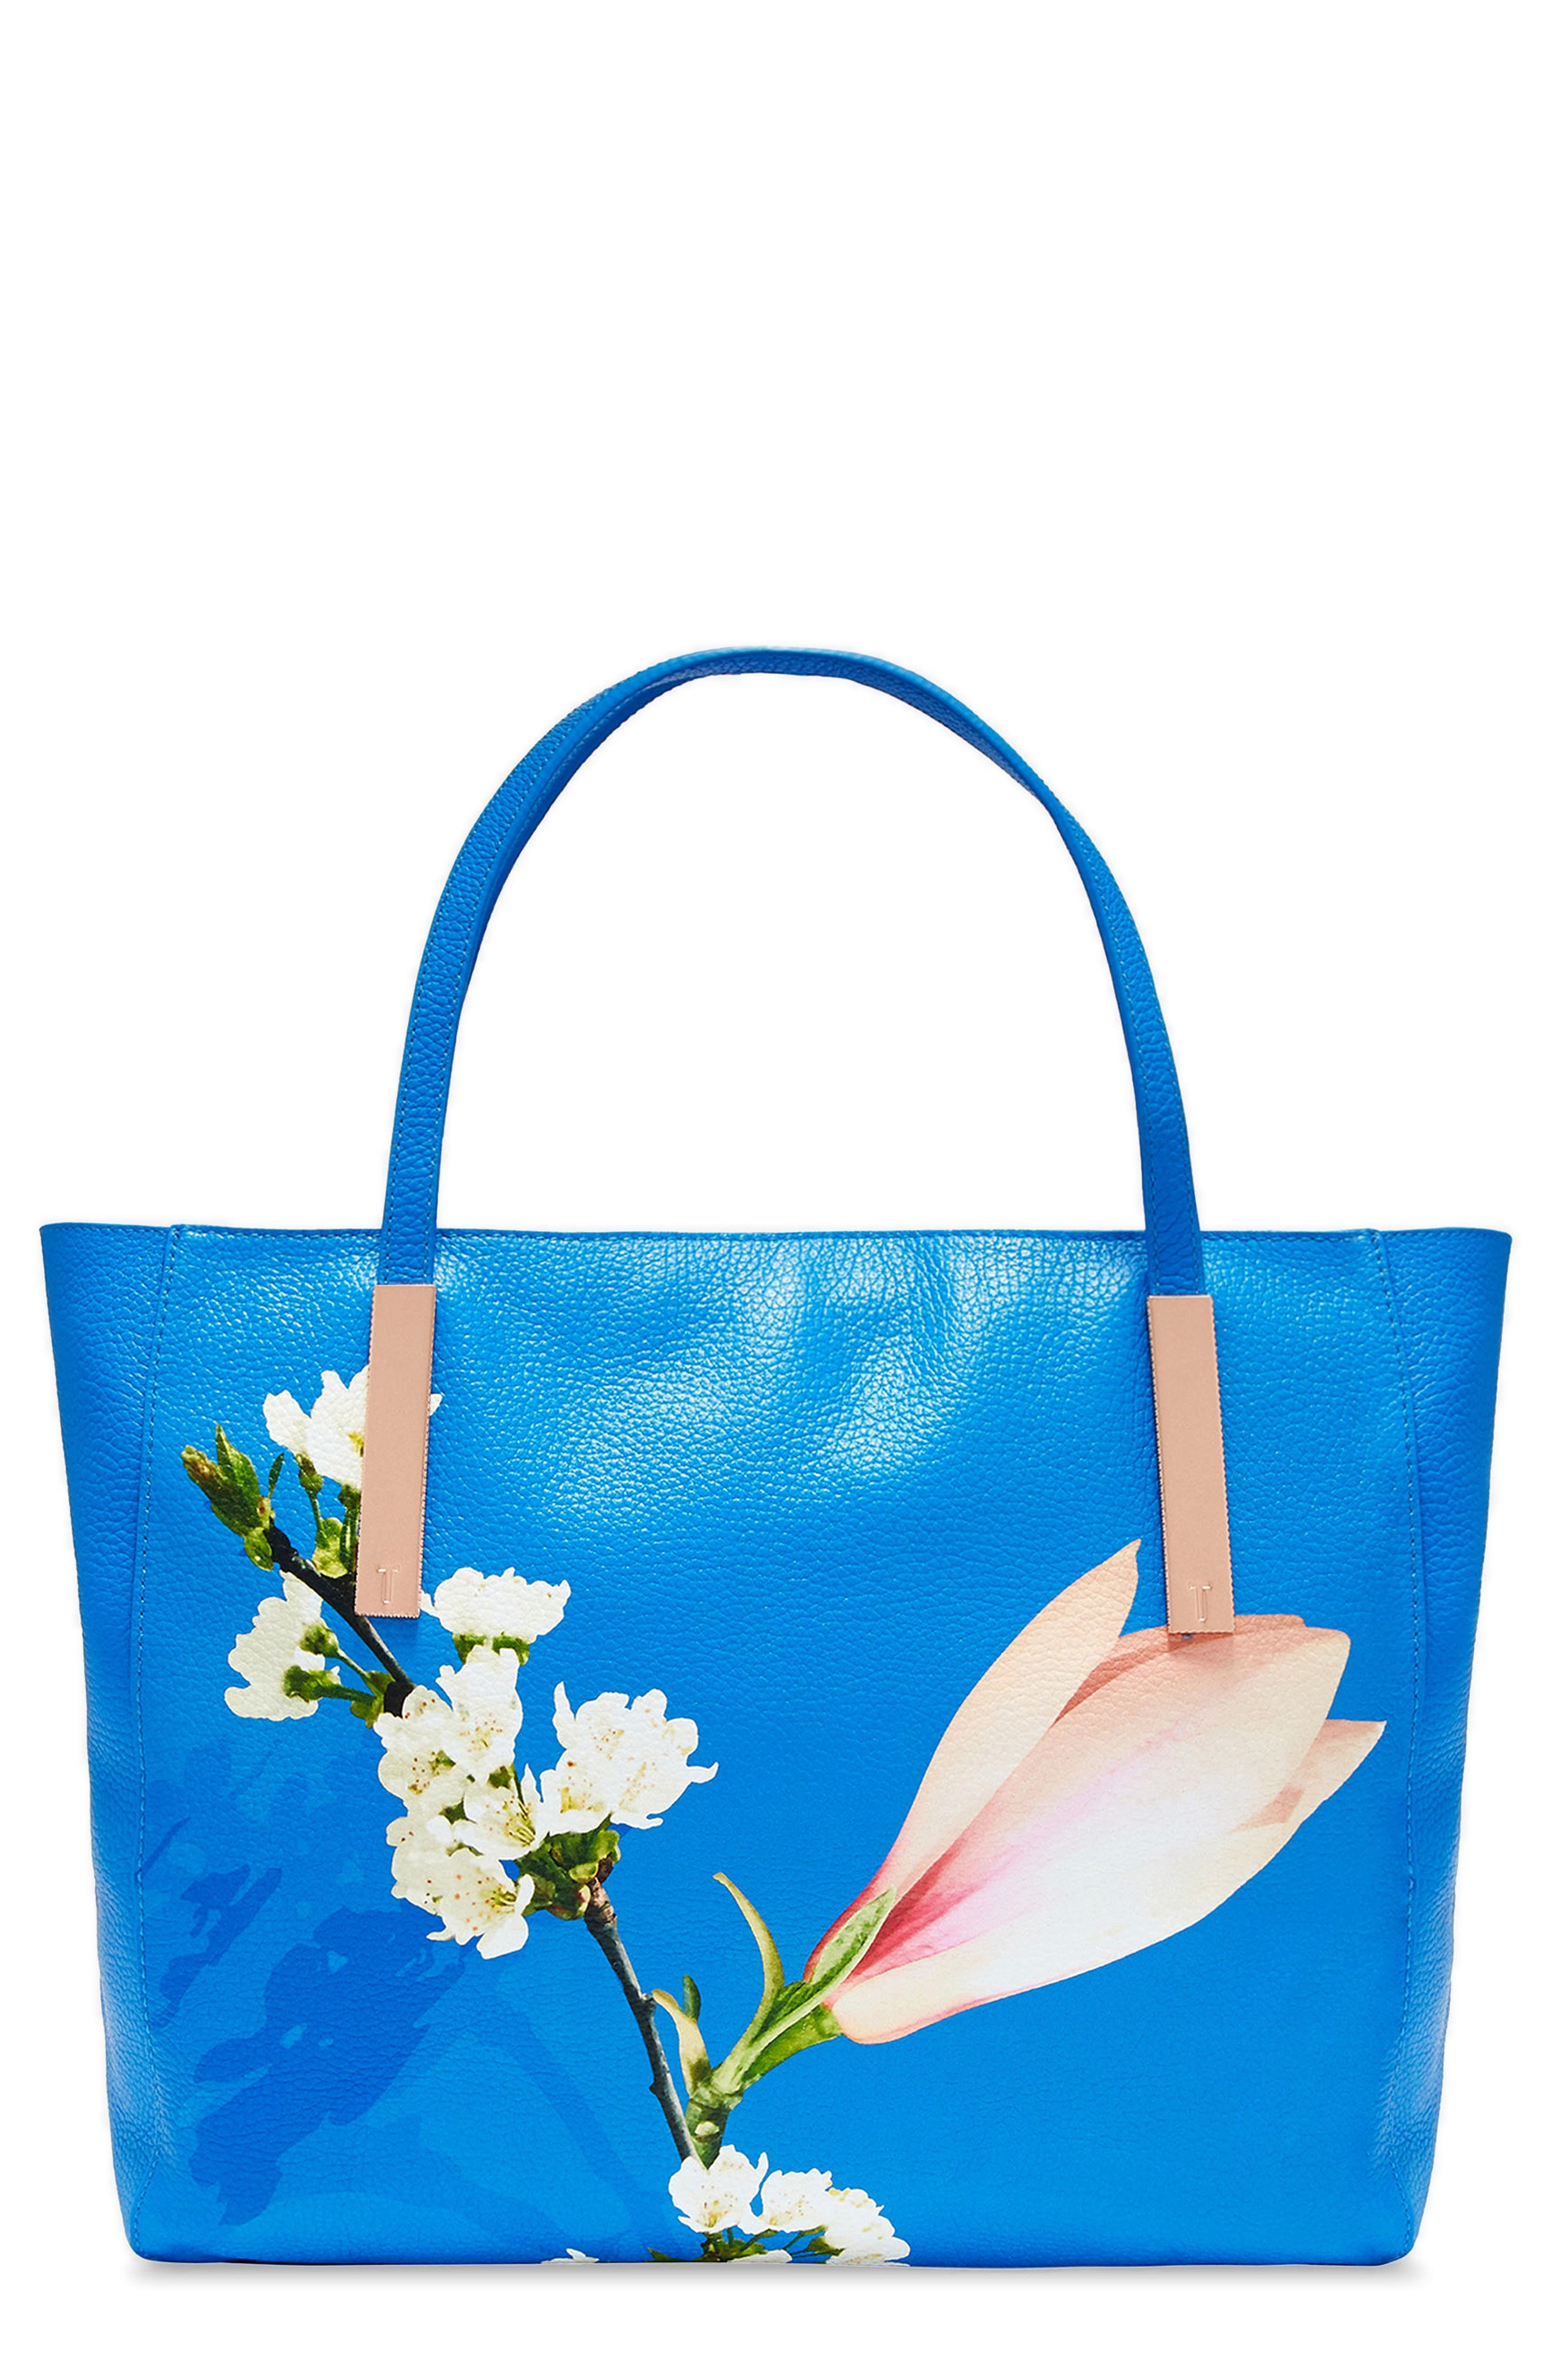 Haanaa Harmony Pebbled Leather Tote,                             Main thumbnail 1, color,                             Bright Blue